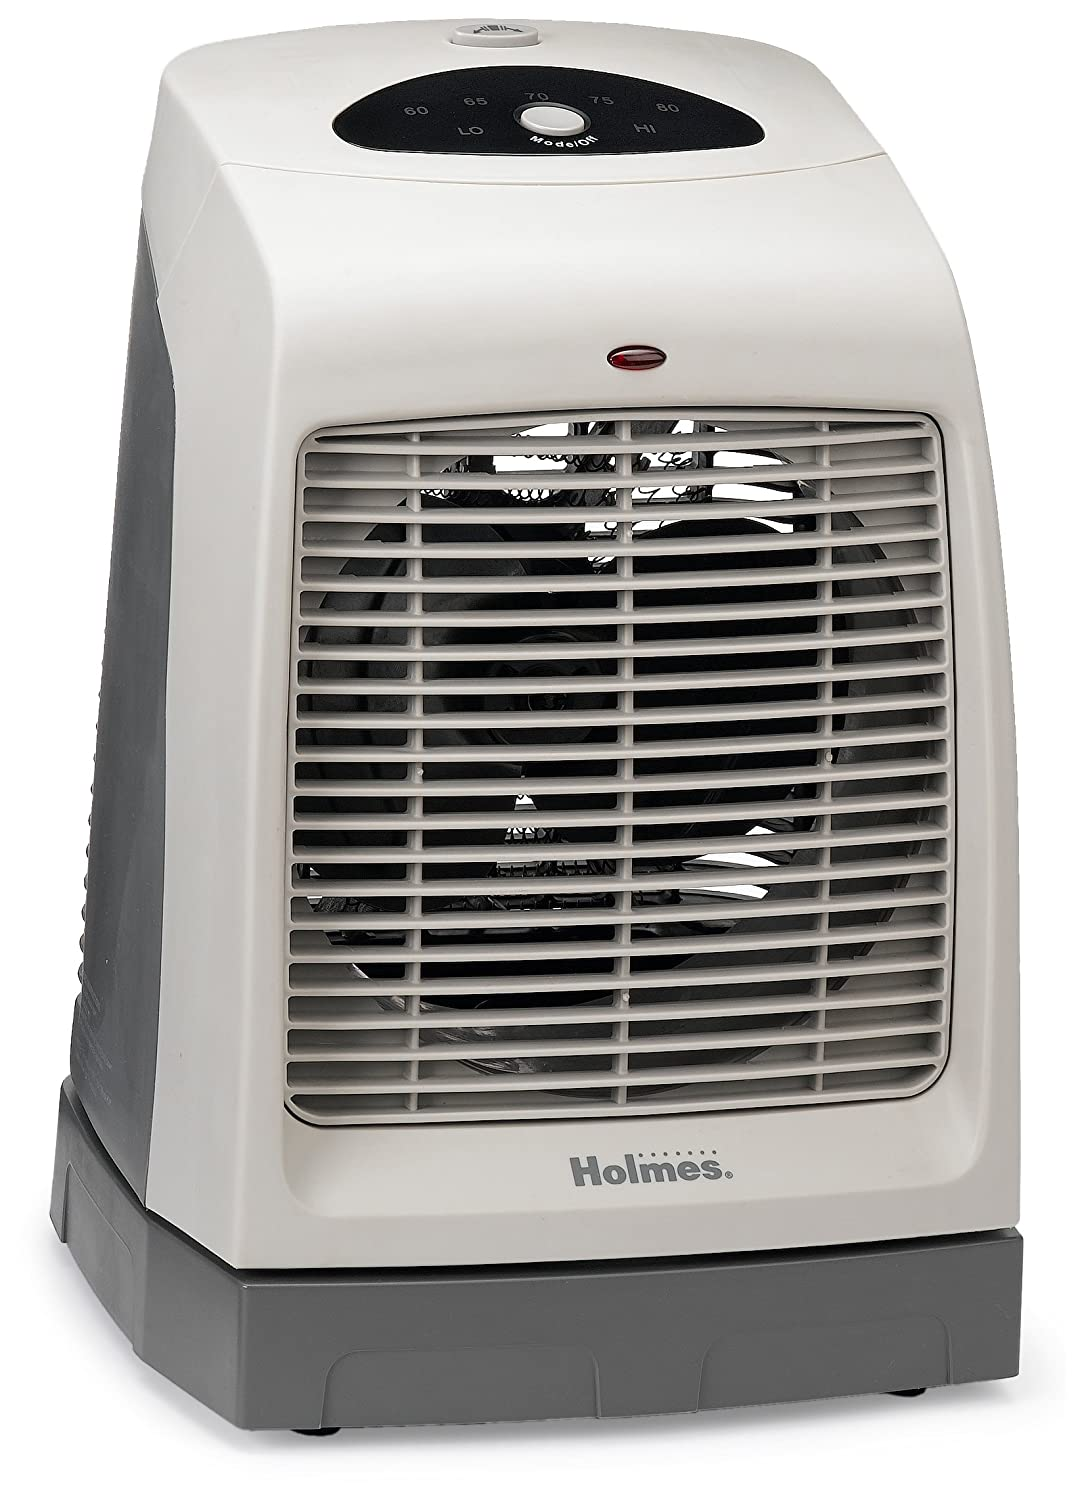 Holmes Hfh5606 Um Oscillating Heater Fan With 1touch Digital Thermostat Space Heaters